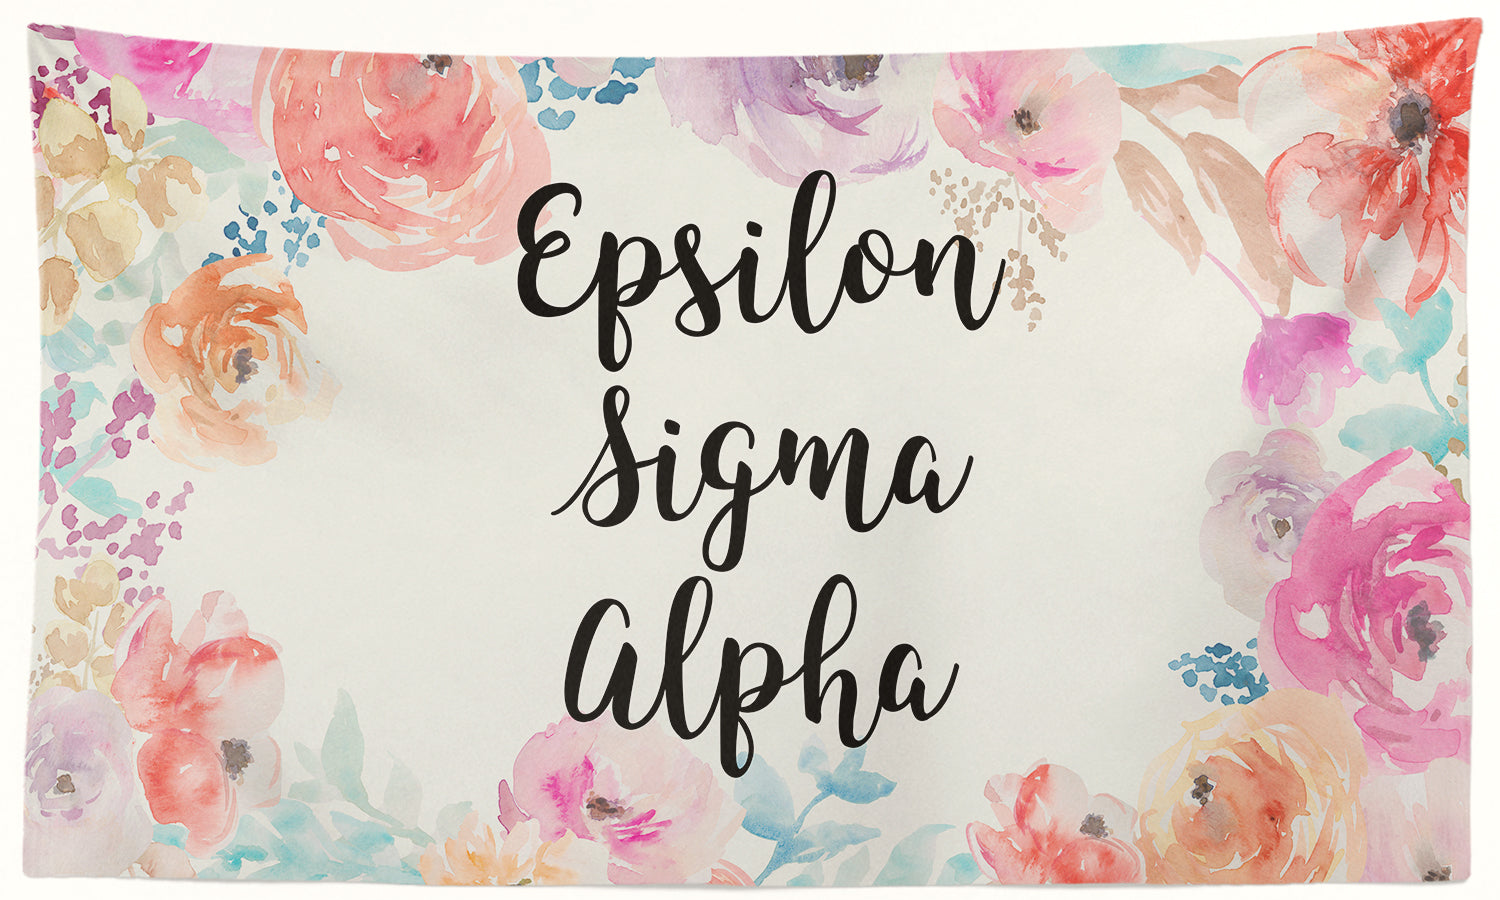 Epsilon Sigma Alpha - New Floral - 3' x 5' Flag